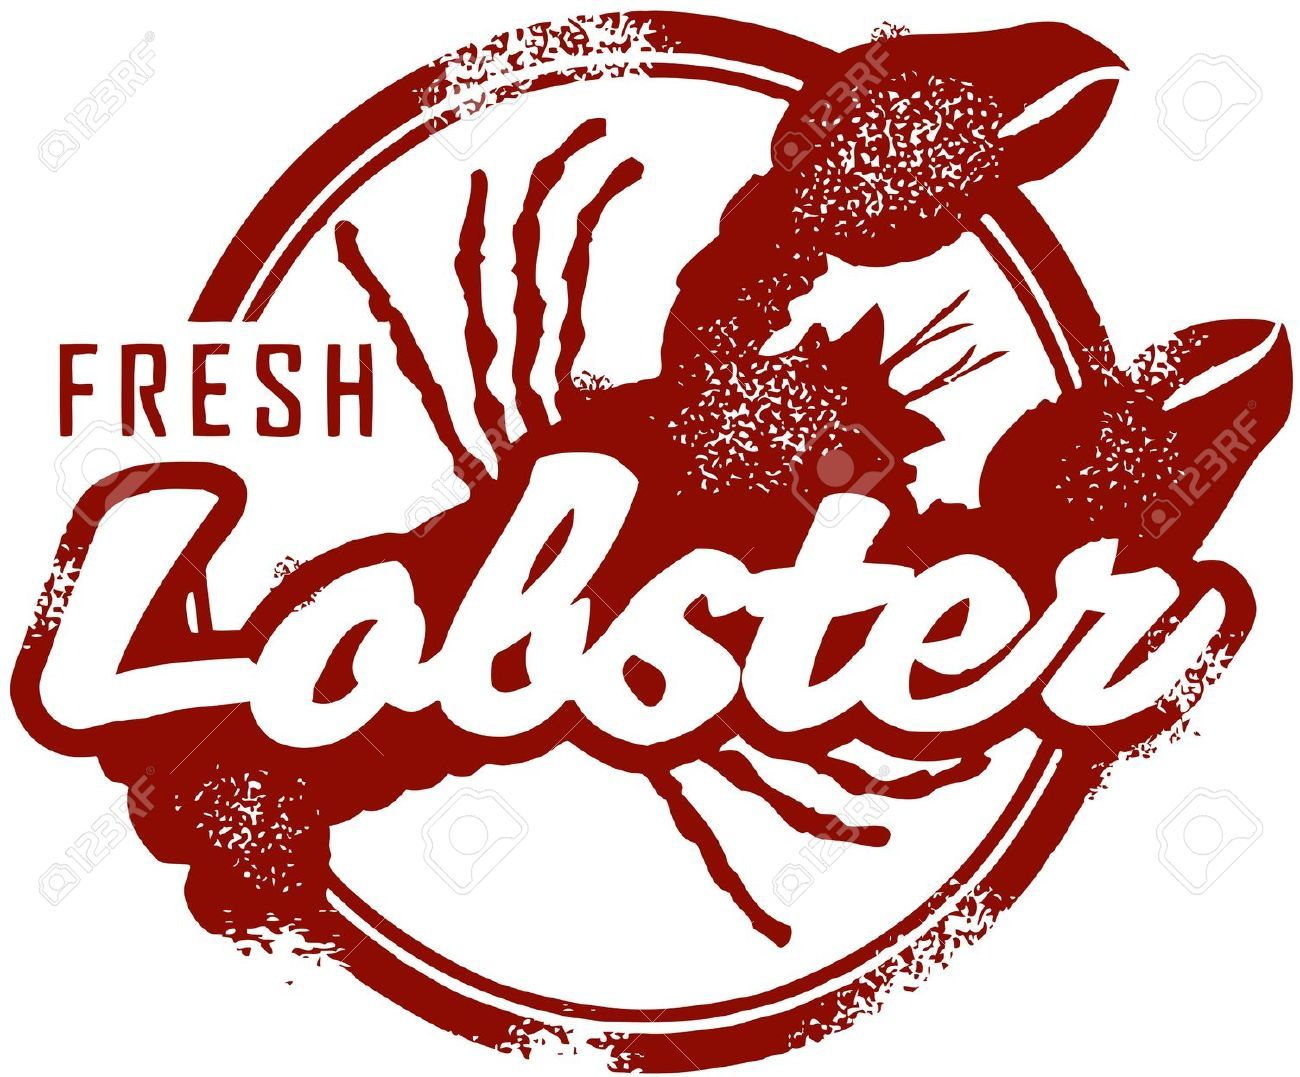 hight resolution of lobster stock vector illustration and royalty free lobster clipart